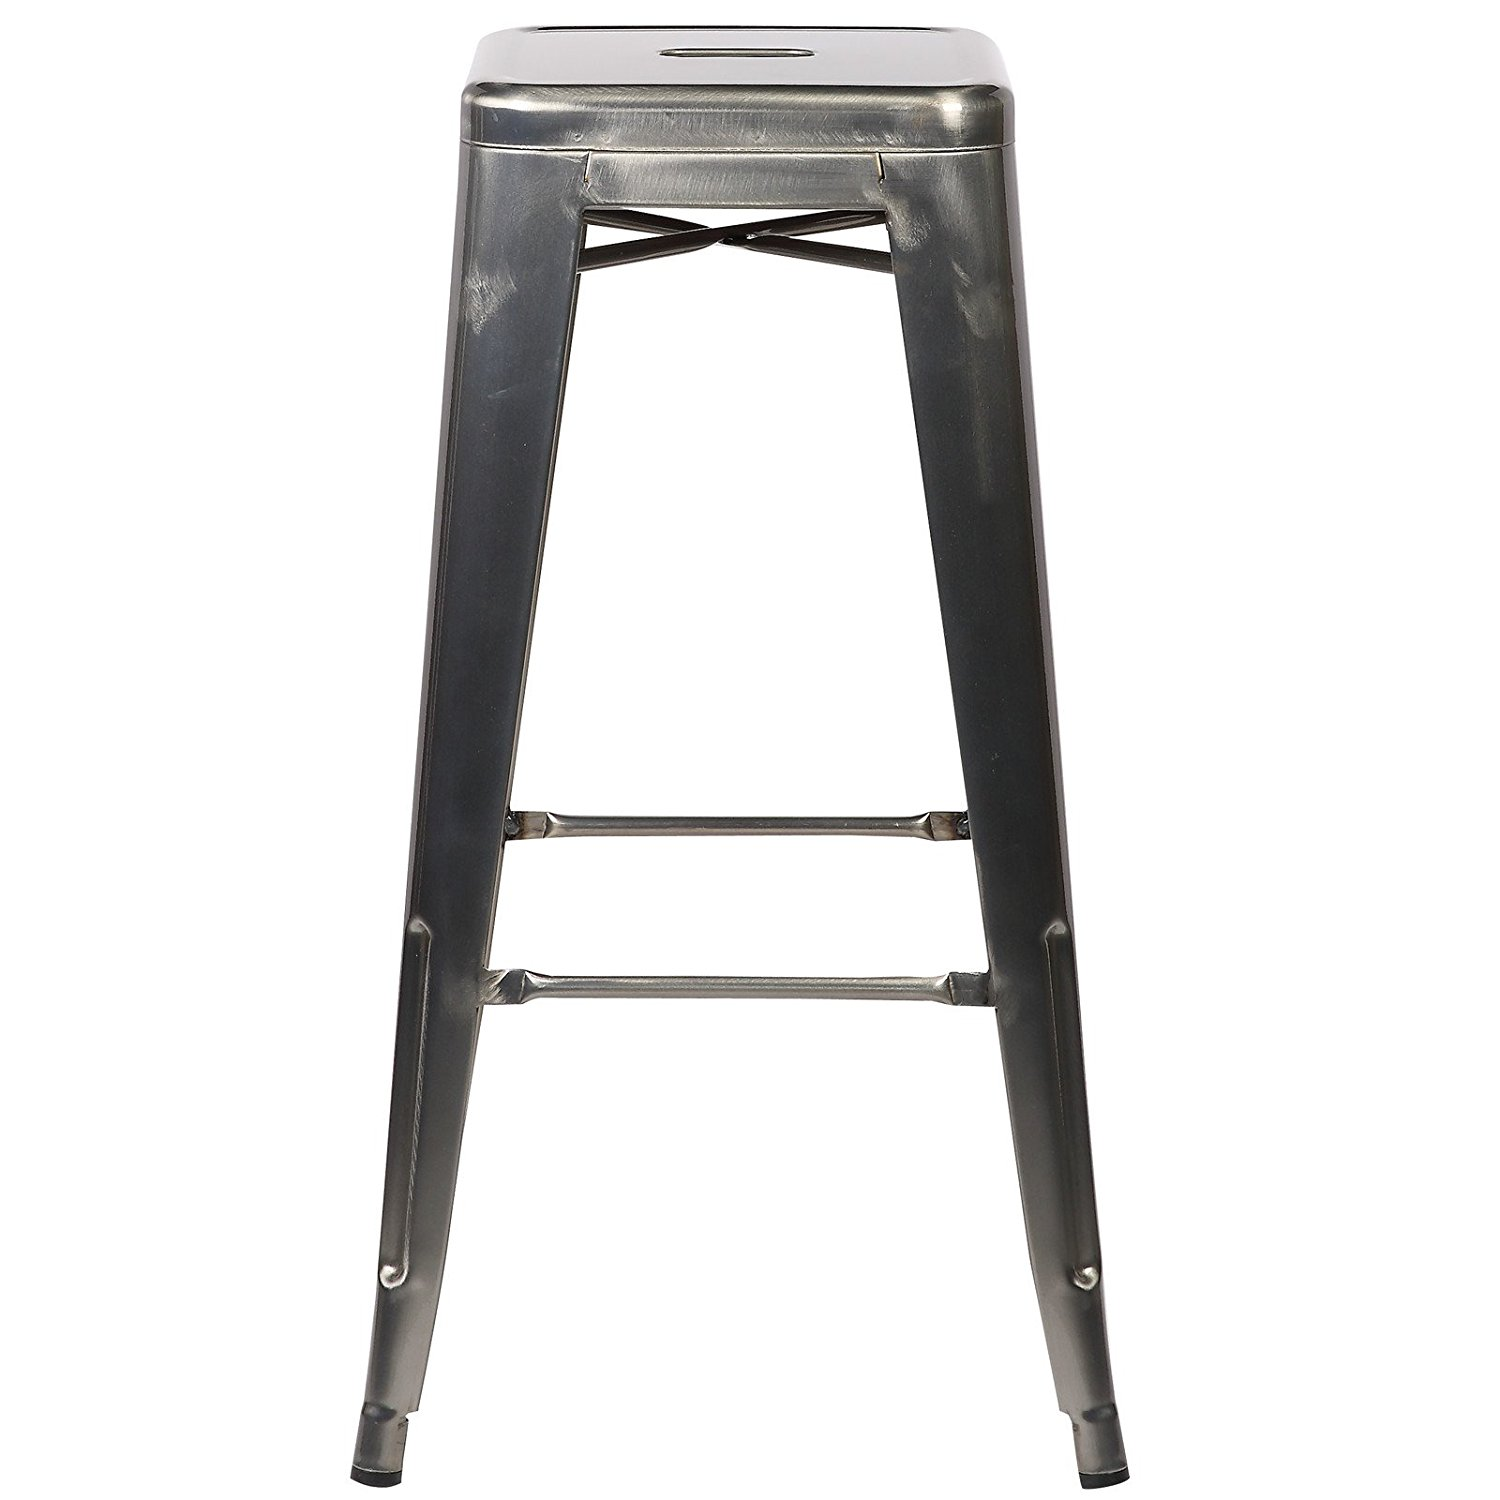 Poly and Bark EM-126-POL-X4 Trattoria Bar Stool in Polished Gunmetal (Set of 4) industrial